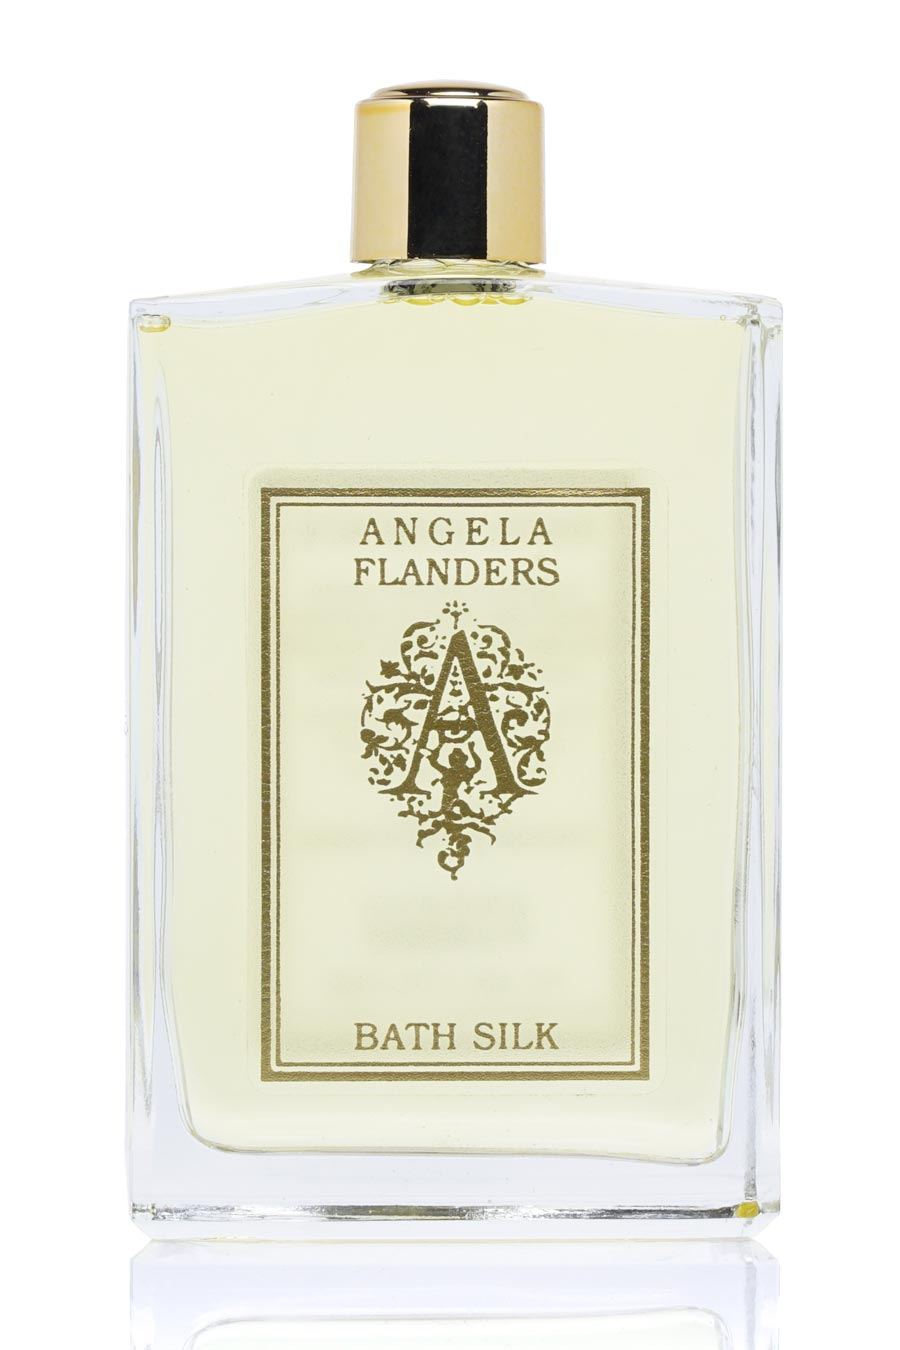 Angela Flanders Ottoman Bath Silk 100ml